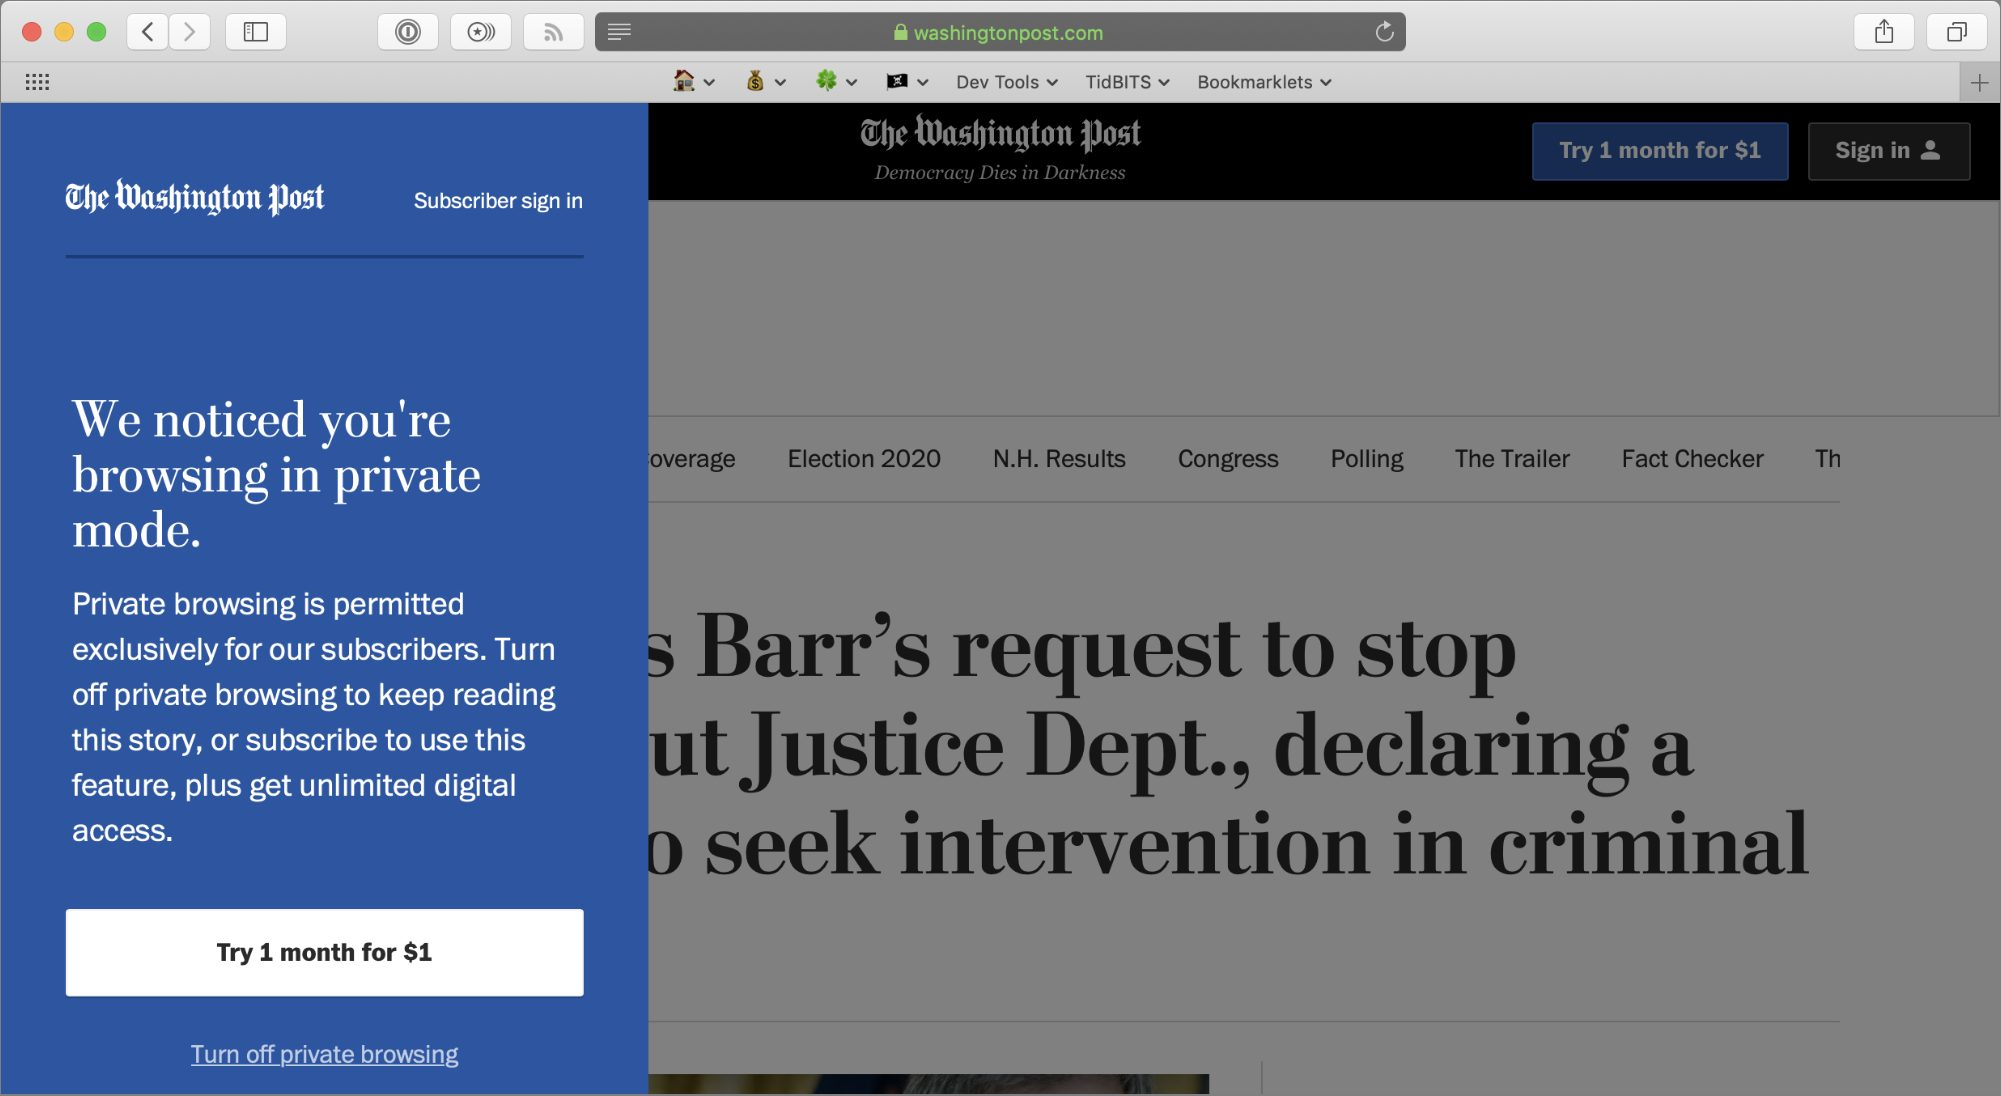 The Washington Post blocking private browsing